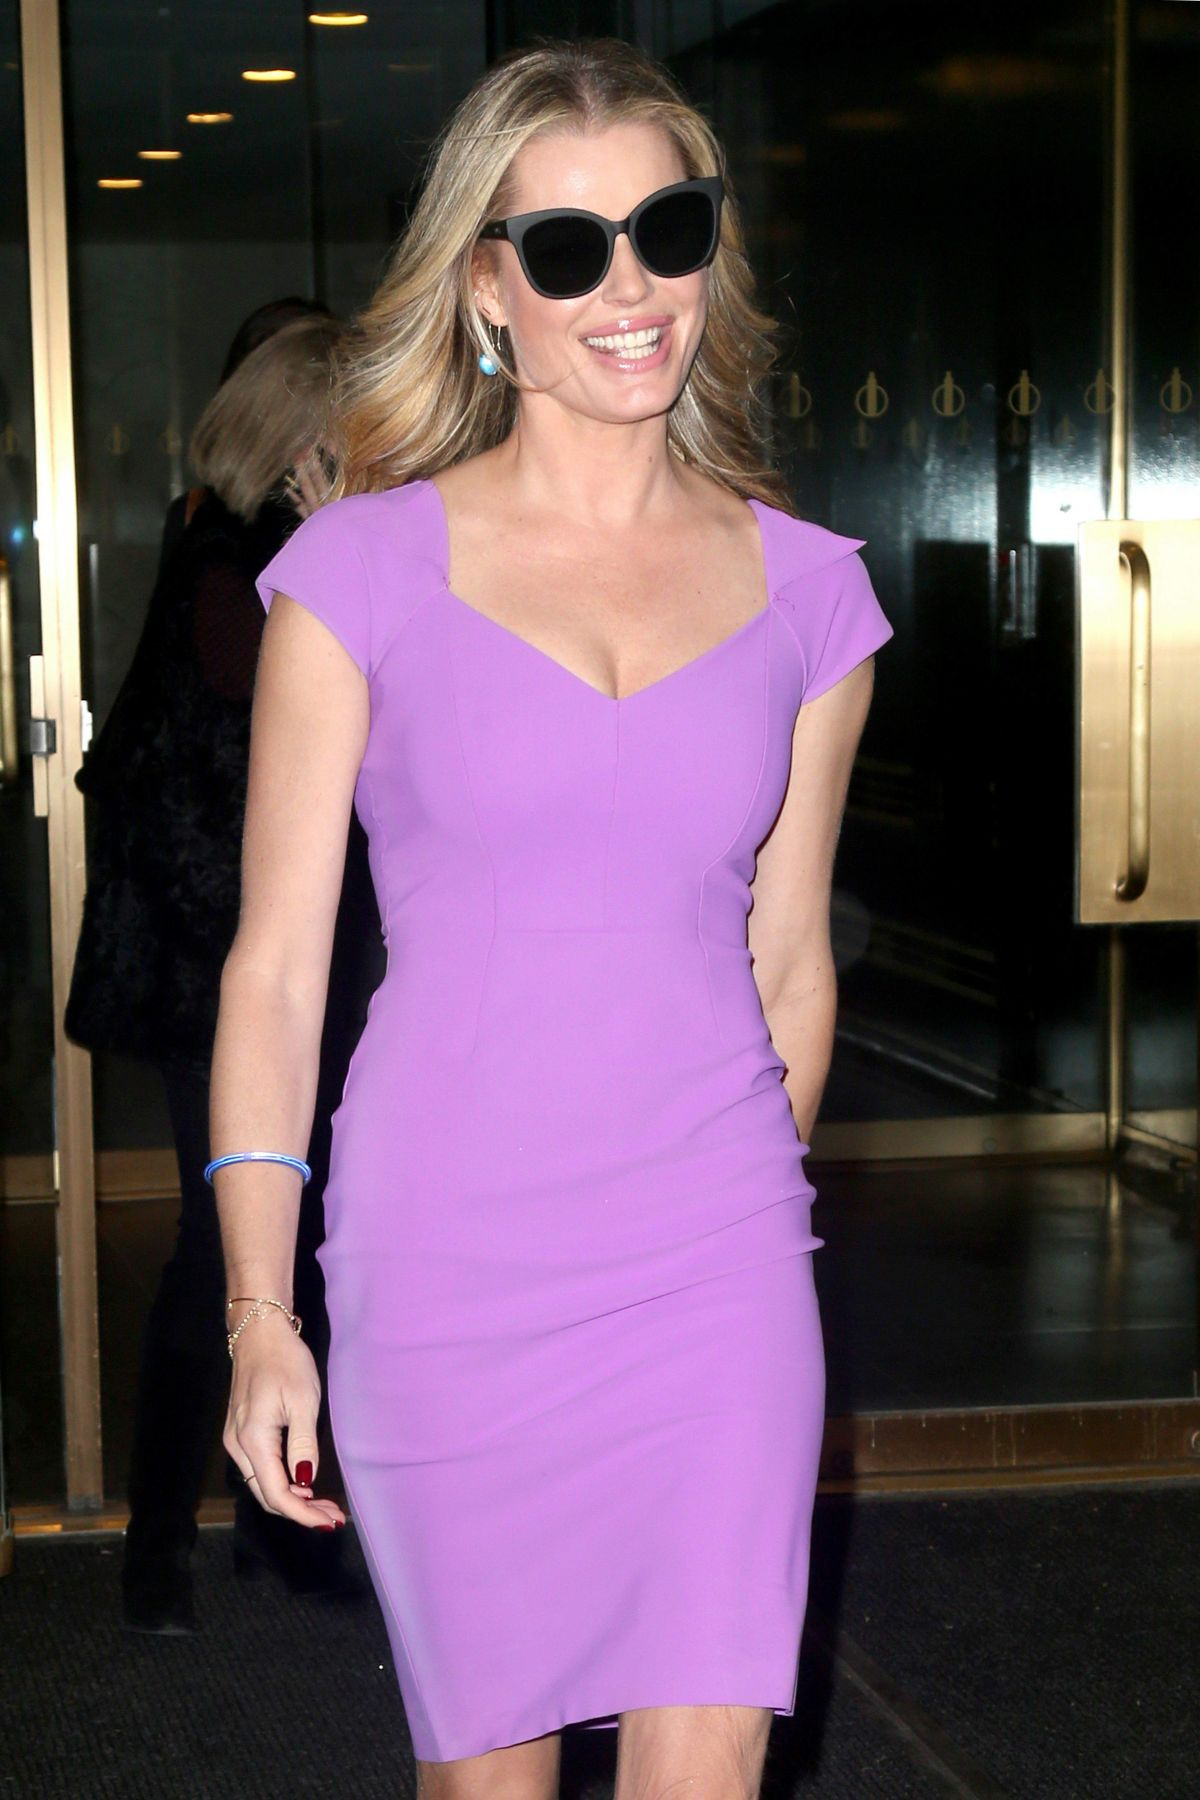 REBECCA ROMIJN at Today Show in New York 11/18/2016